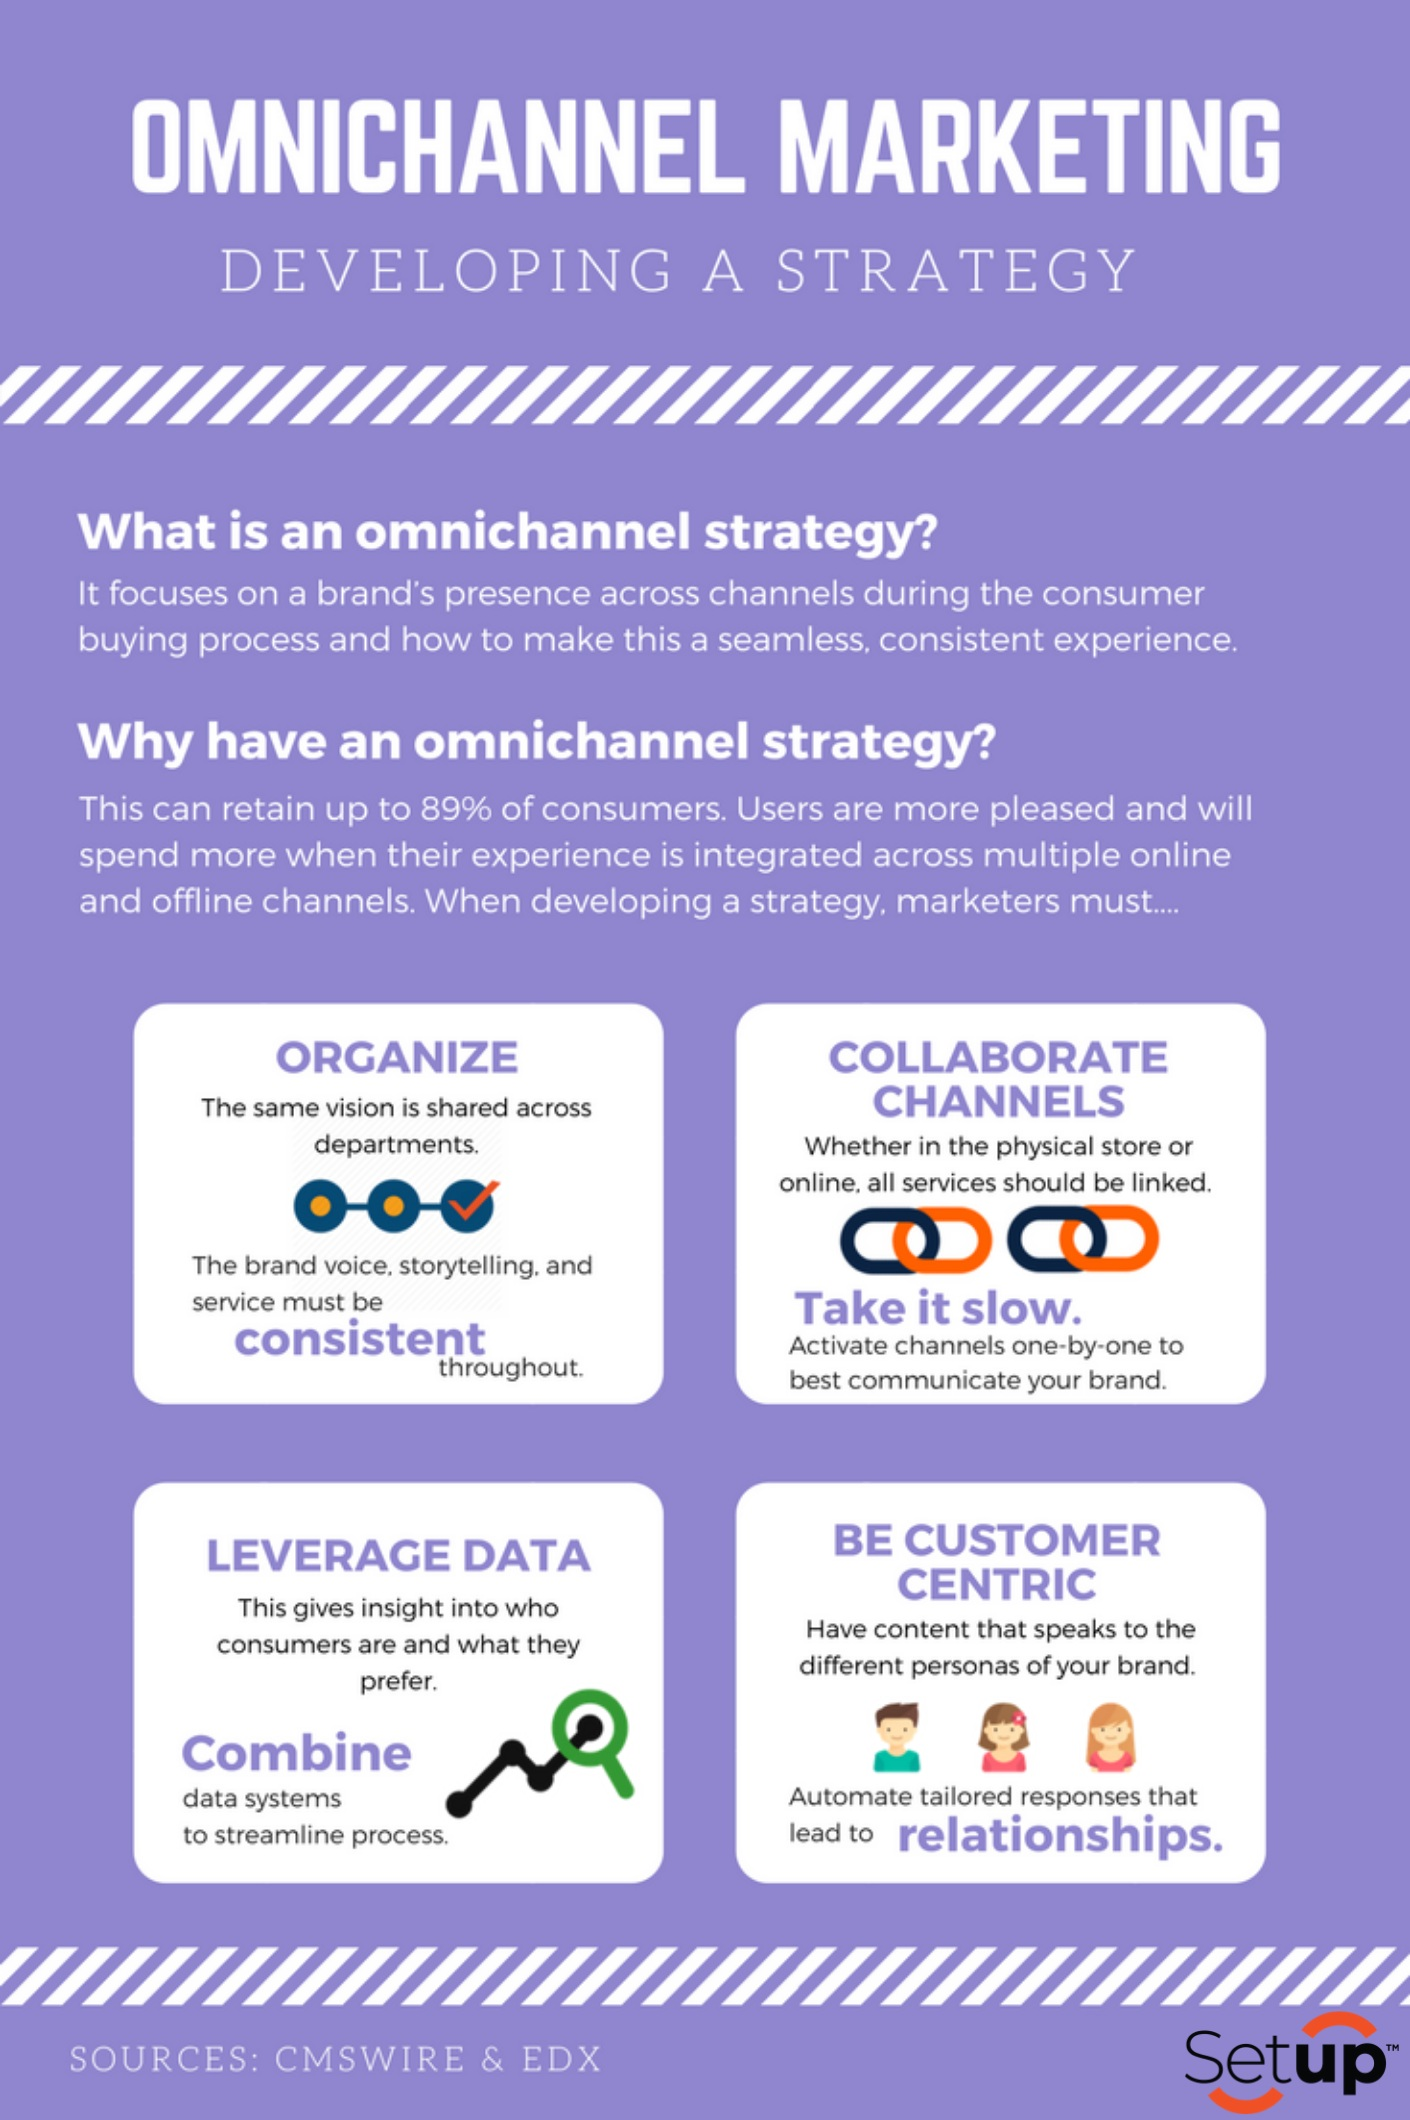 An omni-channel marketing strategy focuses on a brand's presence across channels during the consumer buying process and how to make this a seamless, consistent experience.